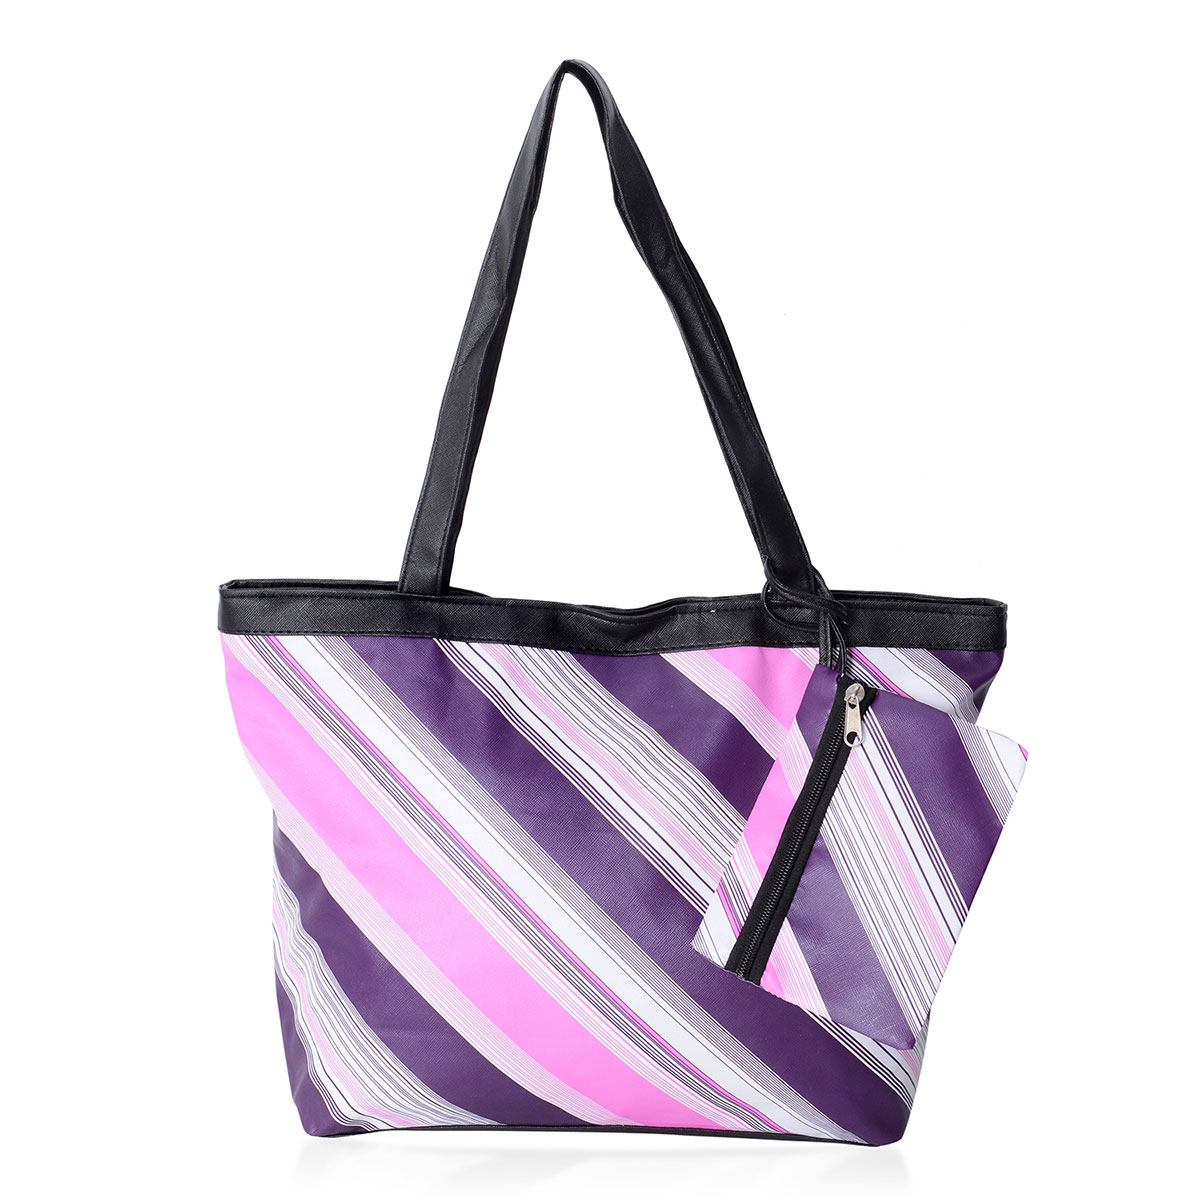 08e98edaae1 Purple and Pink Striped Pattern Satin Black Trimmed Tote Bag (15.5x4.5x10  in) with Matching Removable Coin Pouch (6x4.5 in) | Shop LC